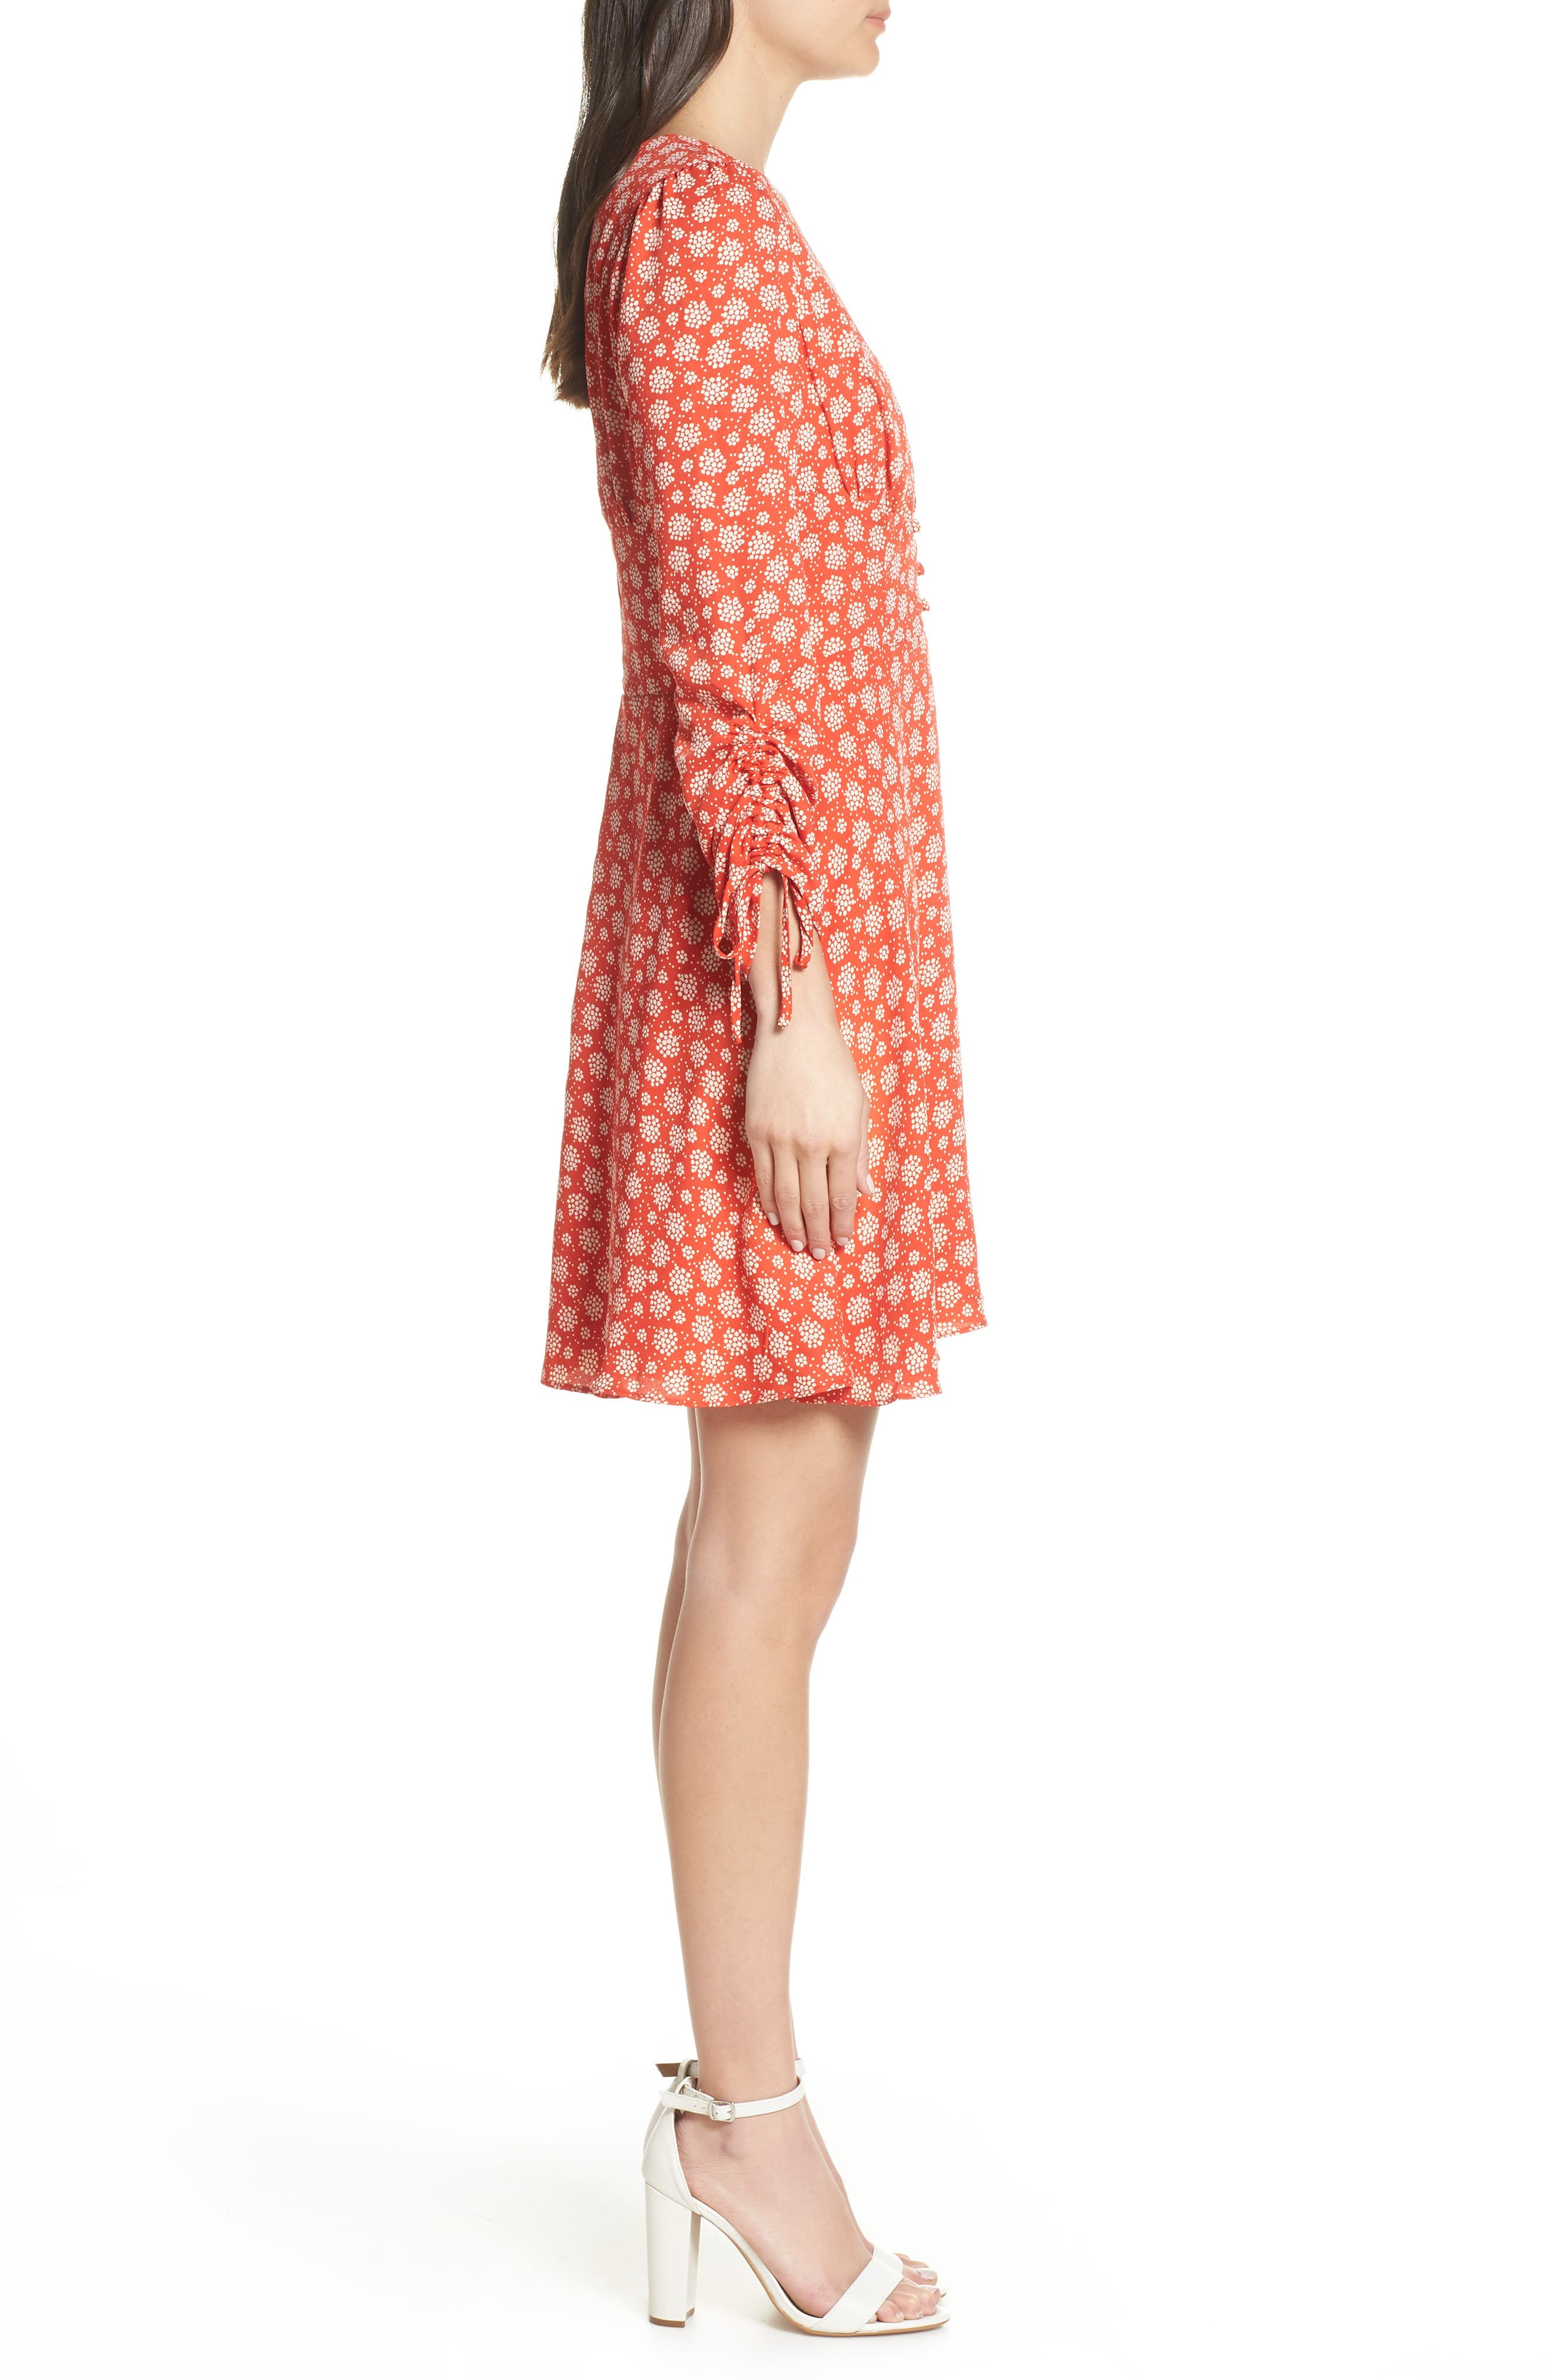 19 COOPER, Ruched Sleeve Fit & Flare Dress, Alternate thumbnail 4, color, 610